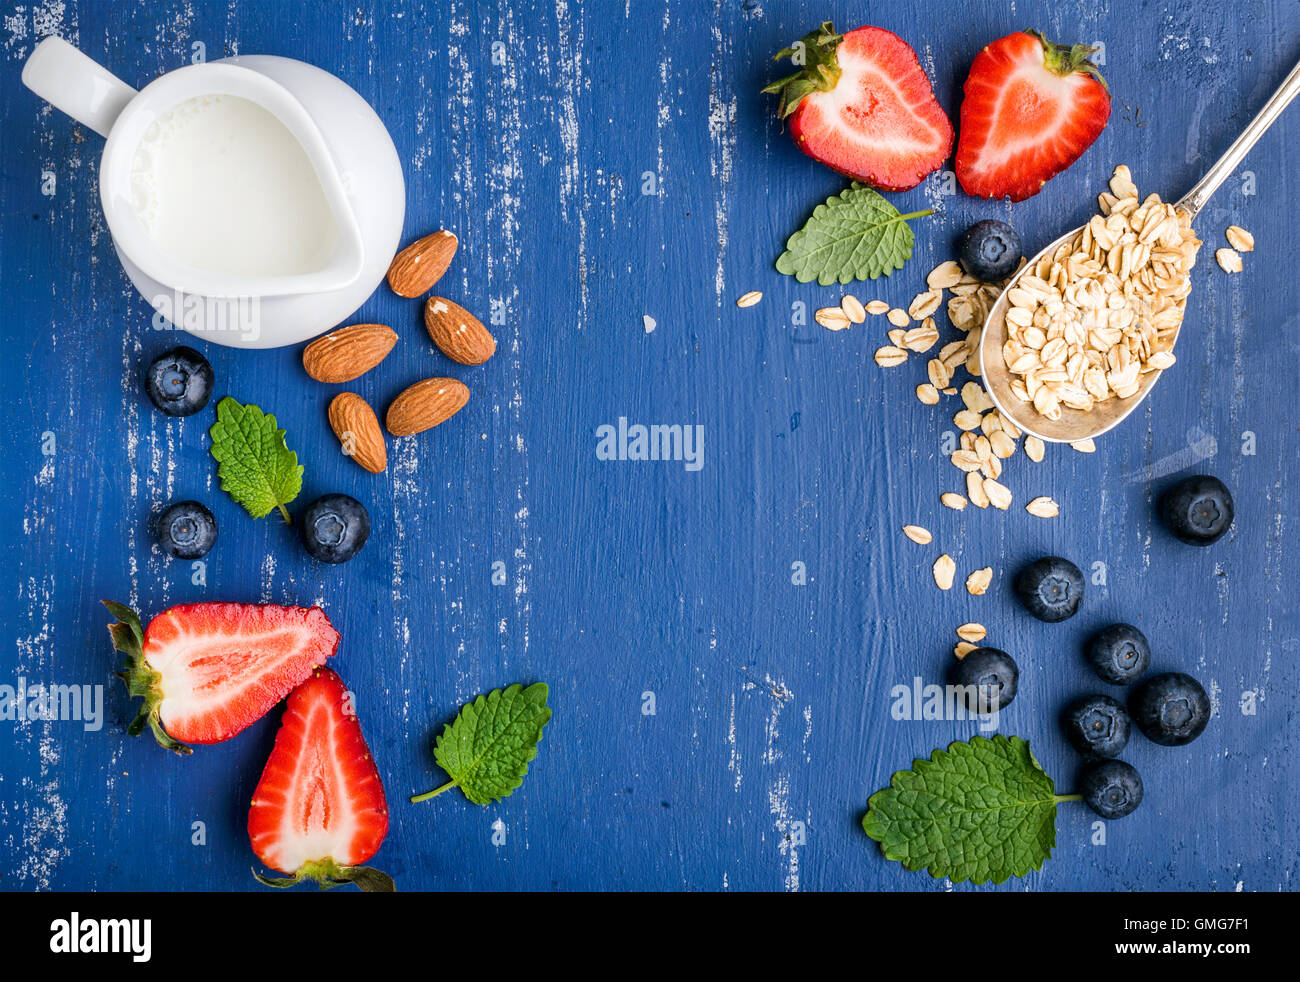 Healthy breakfast ingredients food frame. Oatmeal, milk in creamer, berries, almond and mint on painted blue wooden - Stock Image